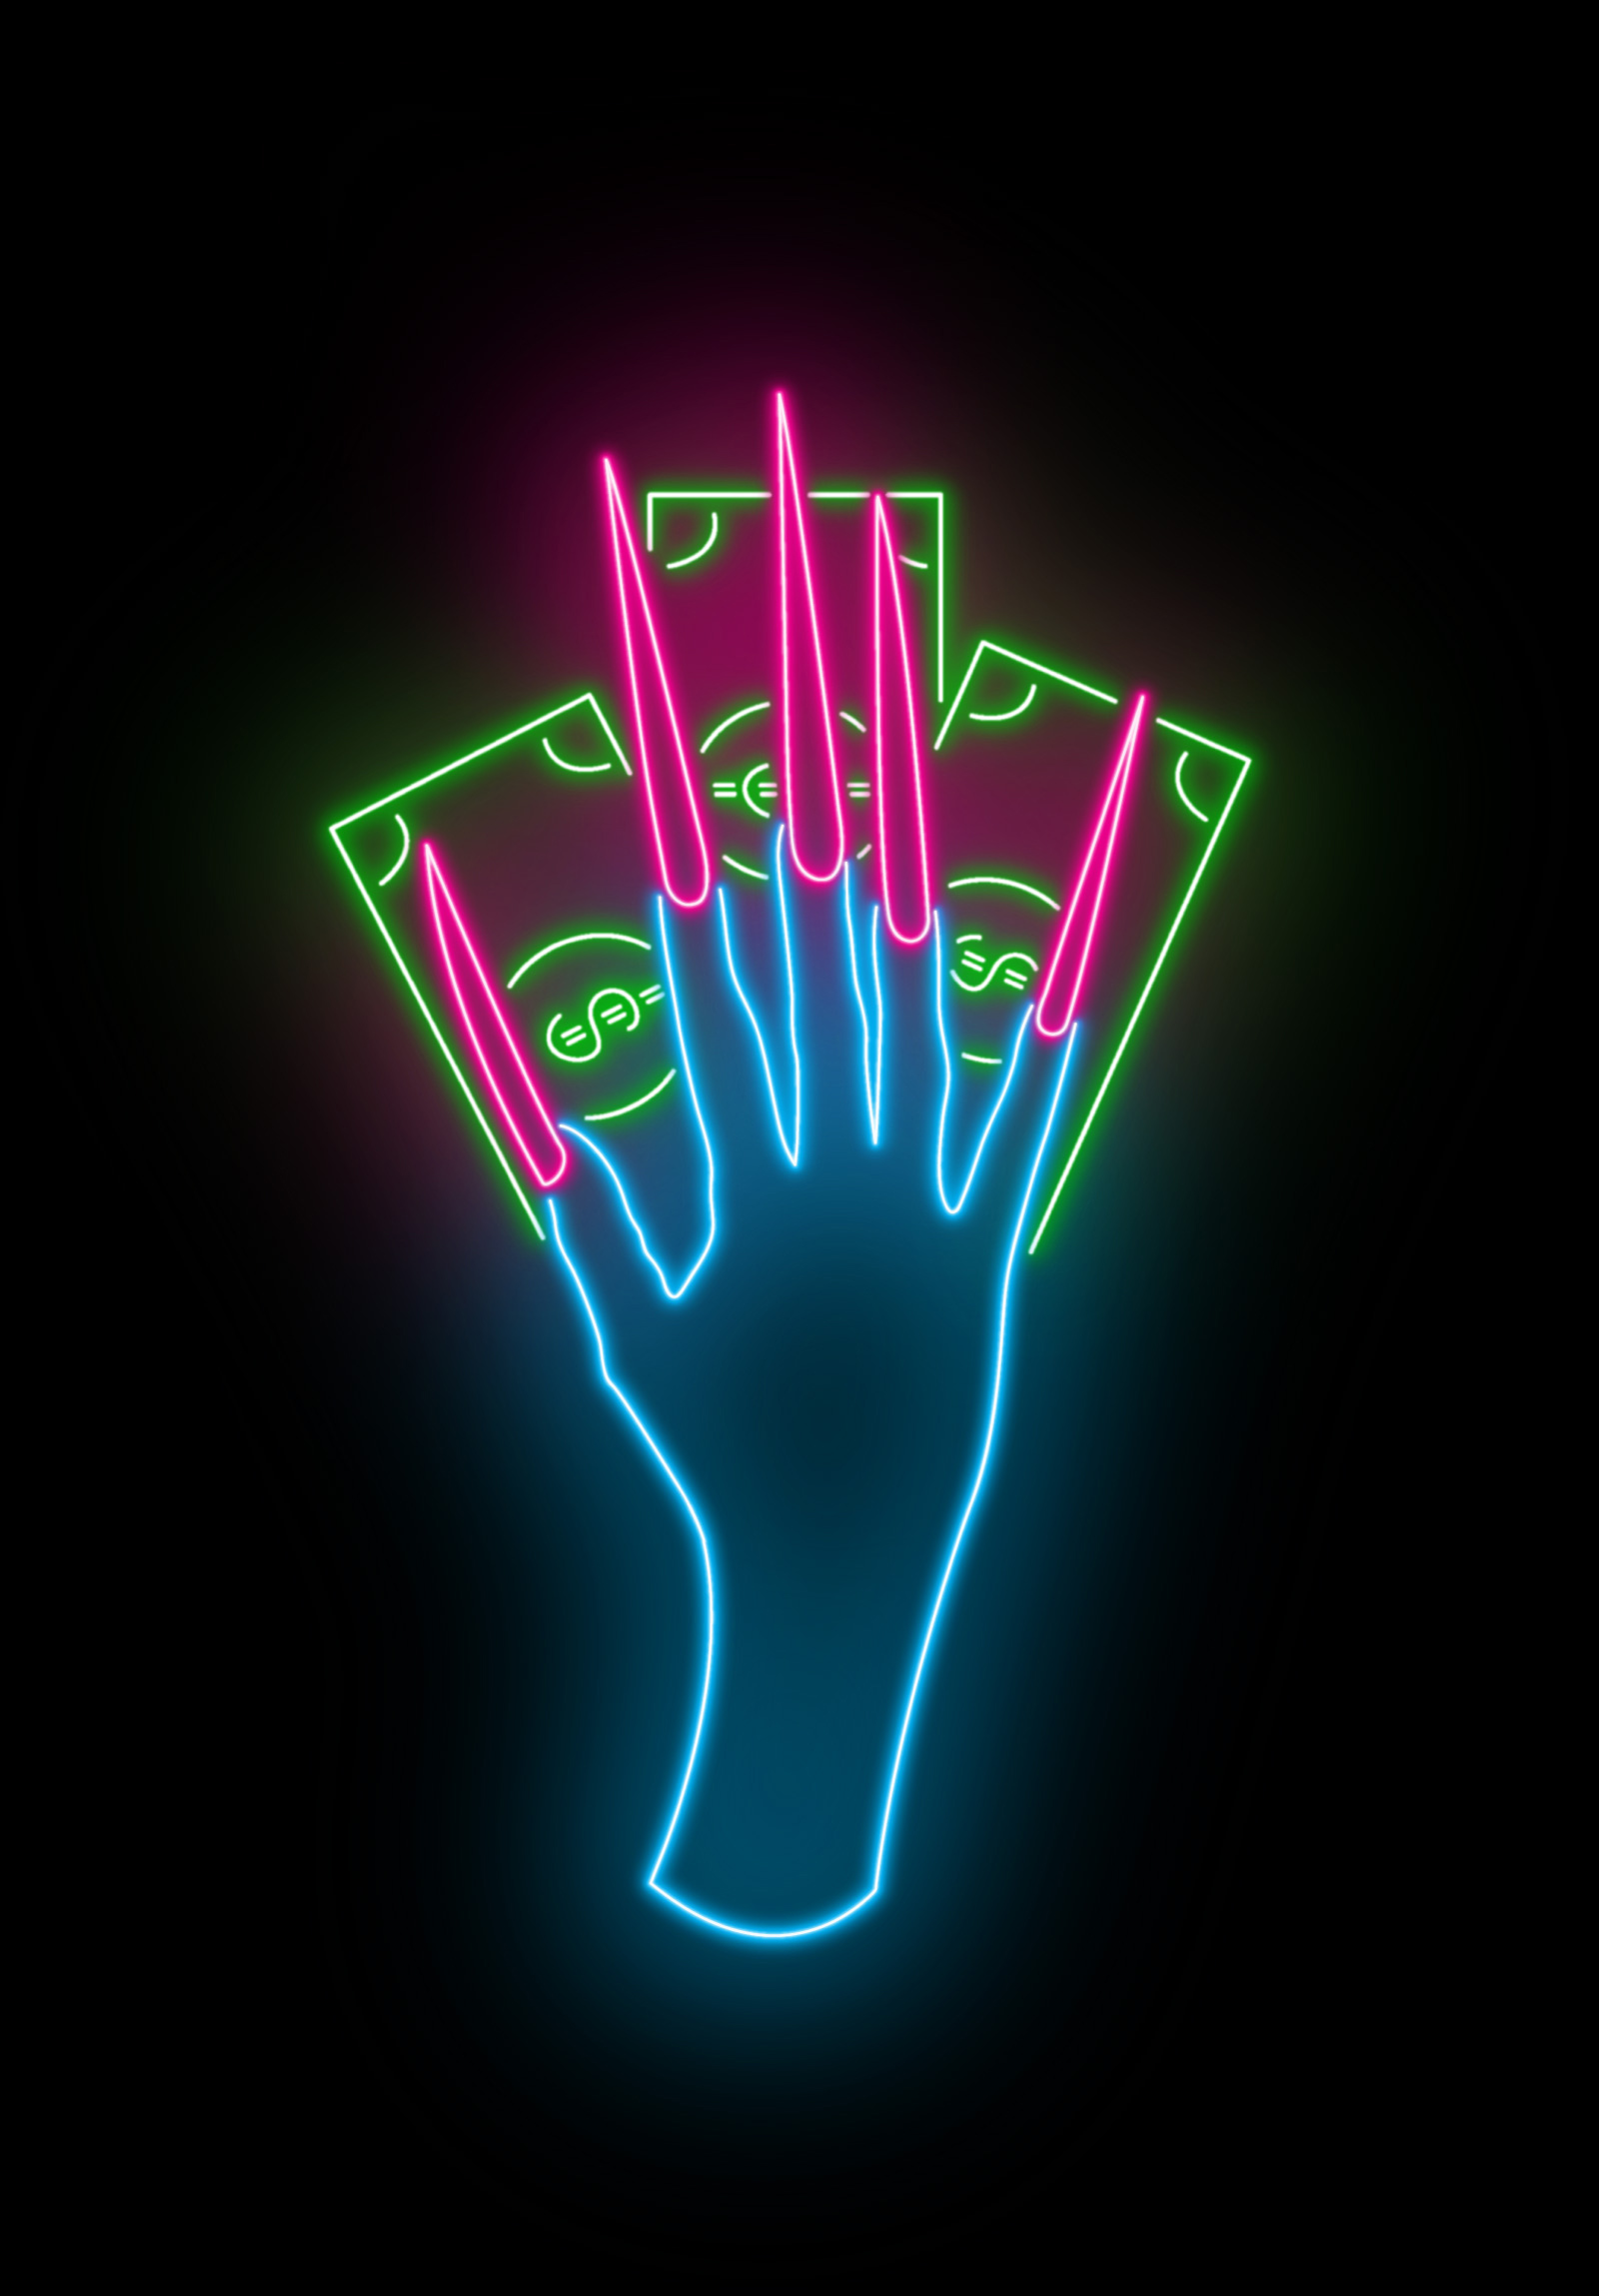 """an outlined vector illustration of a neon blue hand, with long sharply-pointed neon pink nails on top of three green dollar bills, reminiscent of Cardi B's hand in the music video for """"WAP"""""""